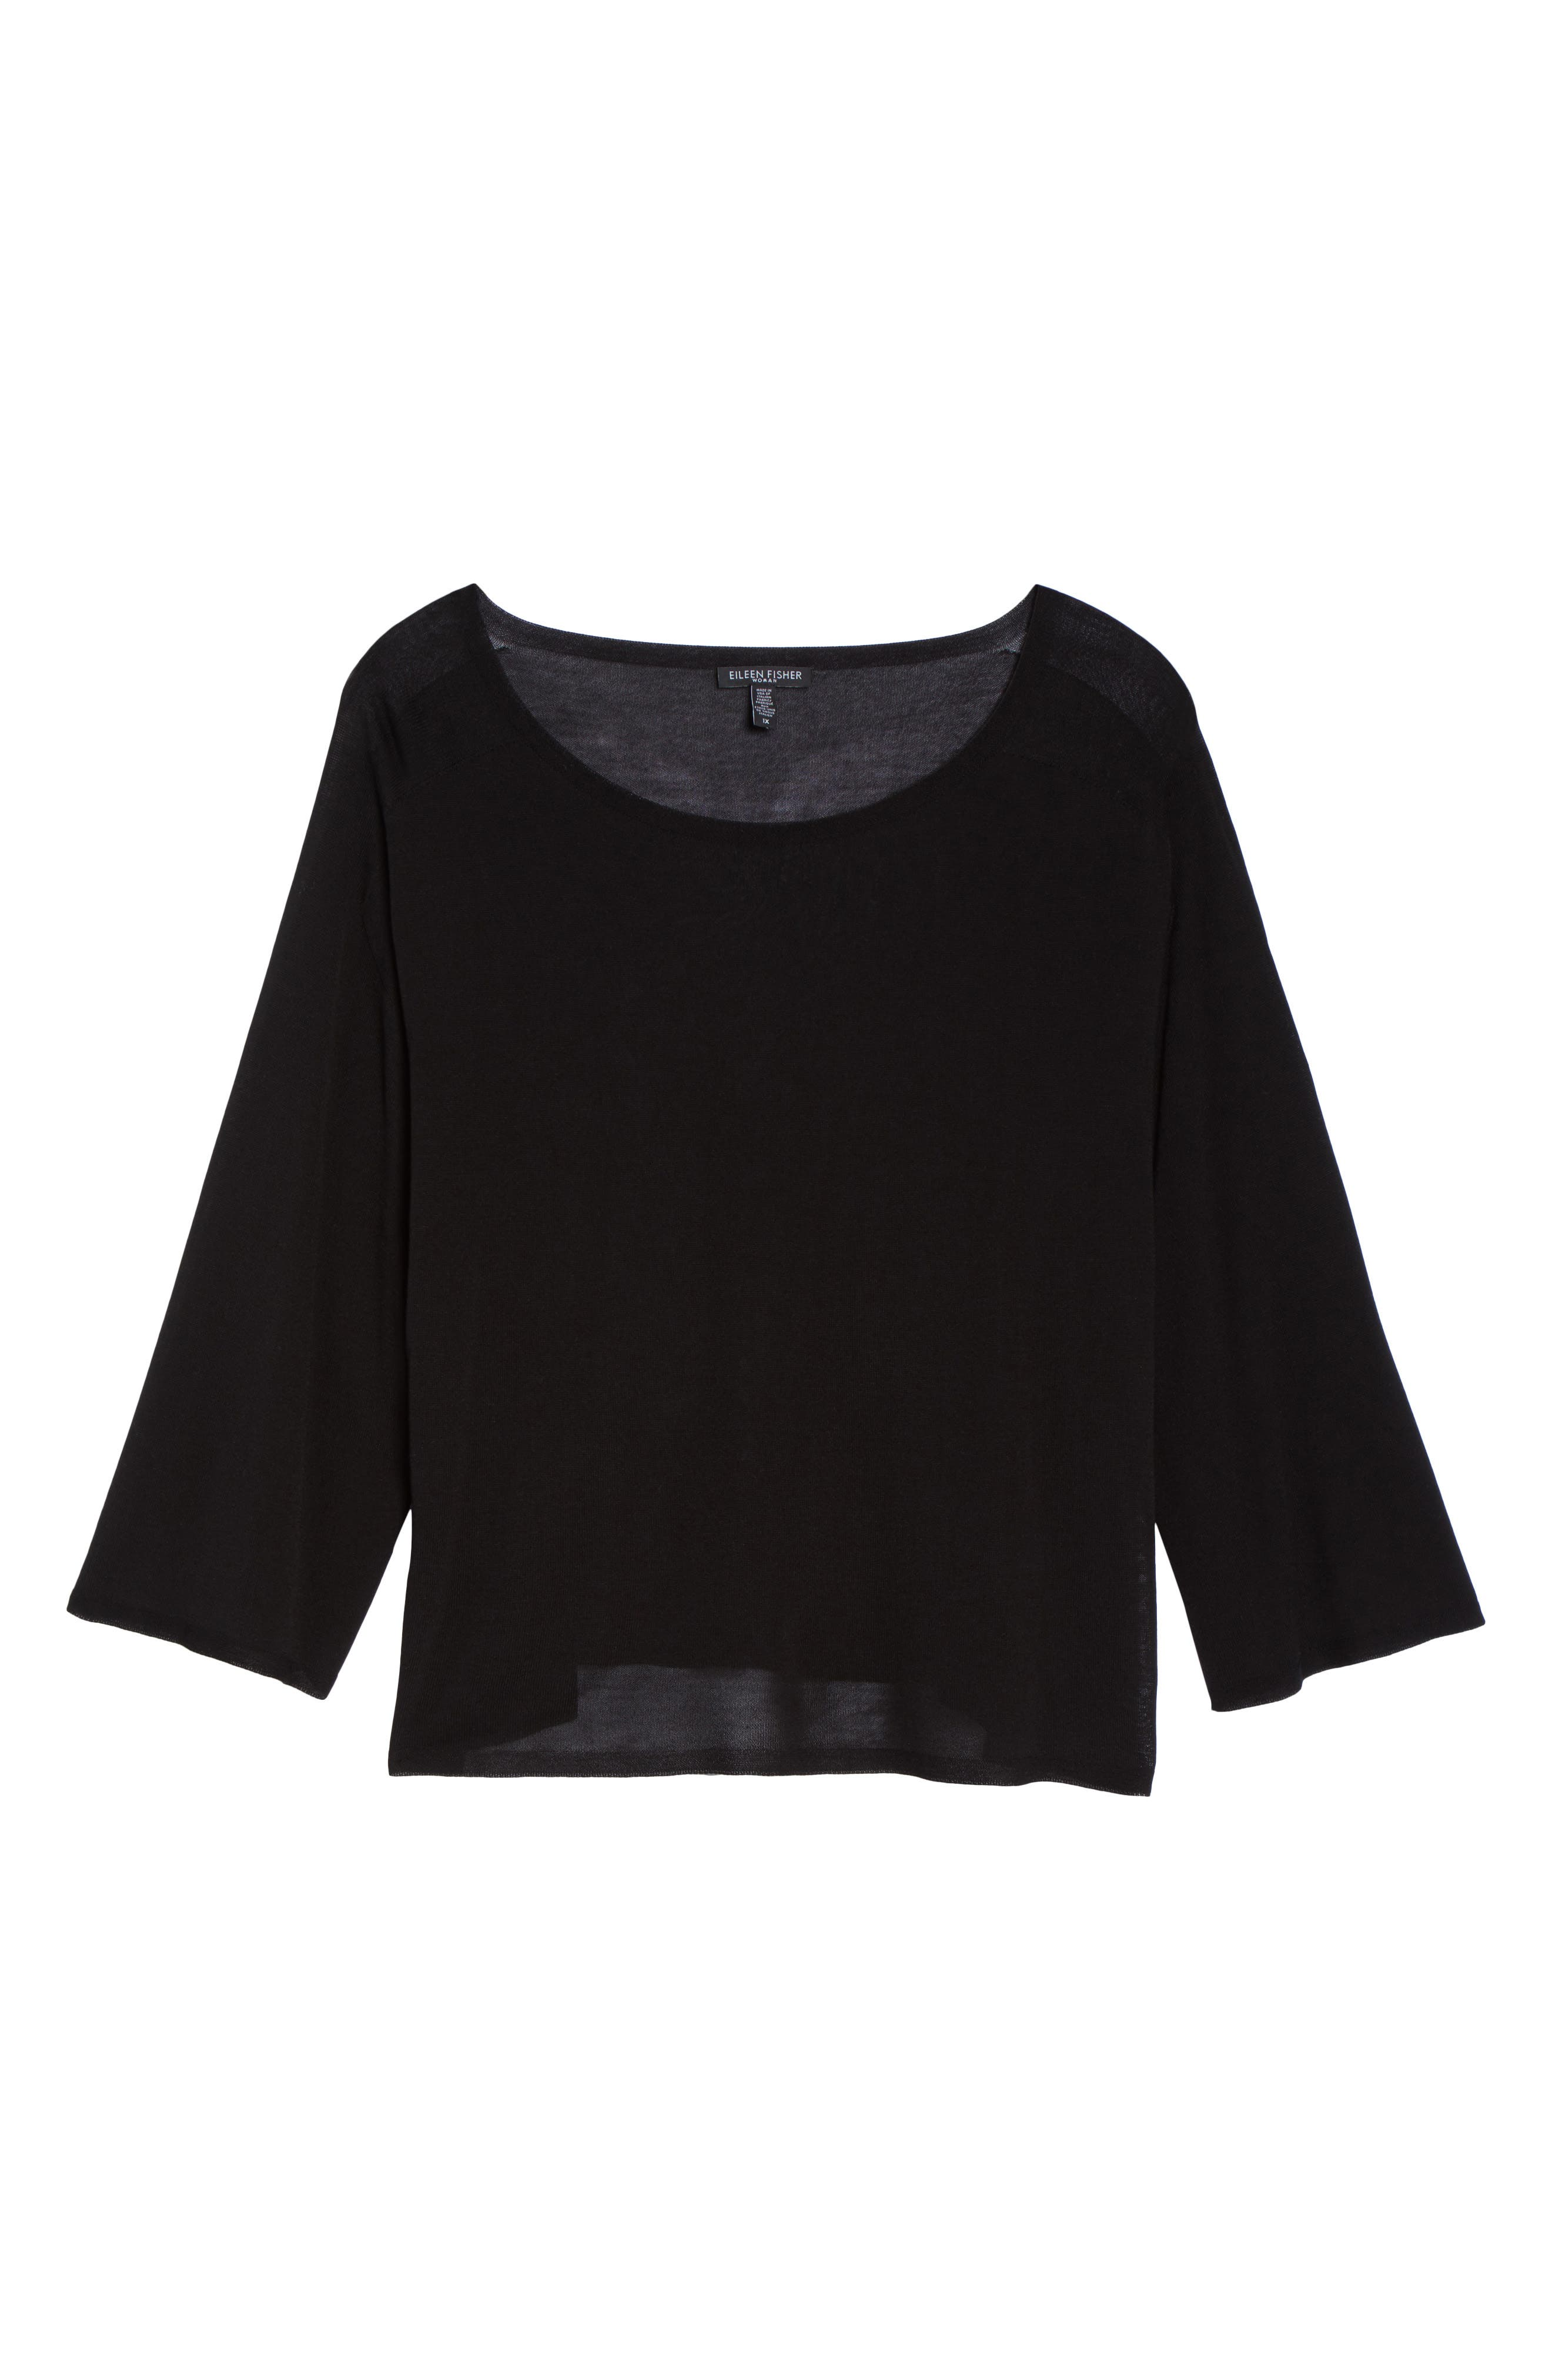 Tencel<sup>®</sup> Lyocell Lyocell Knit Sweater,                             Alternate thumbnail 6, color,                             001